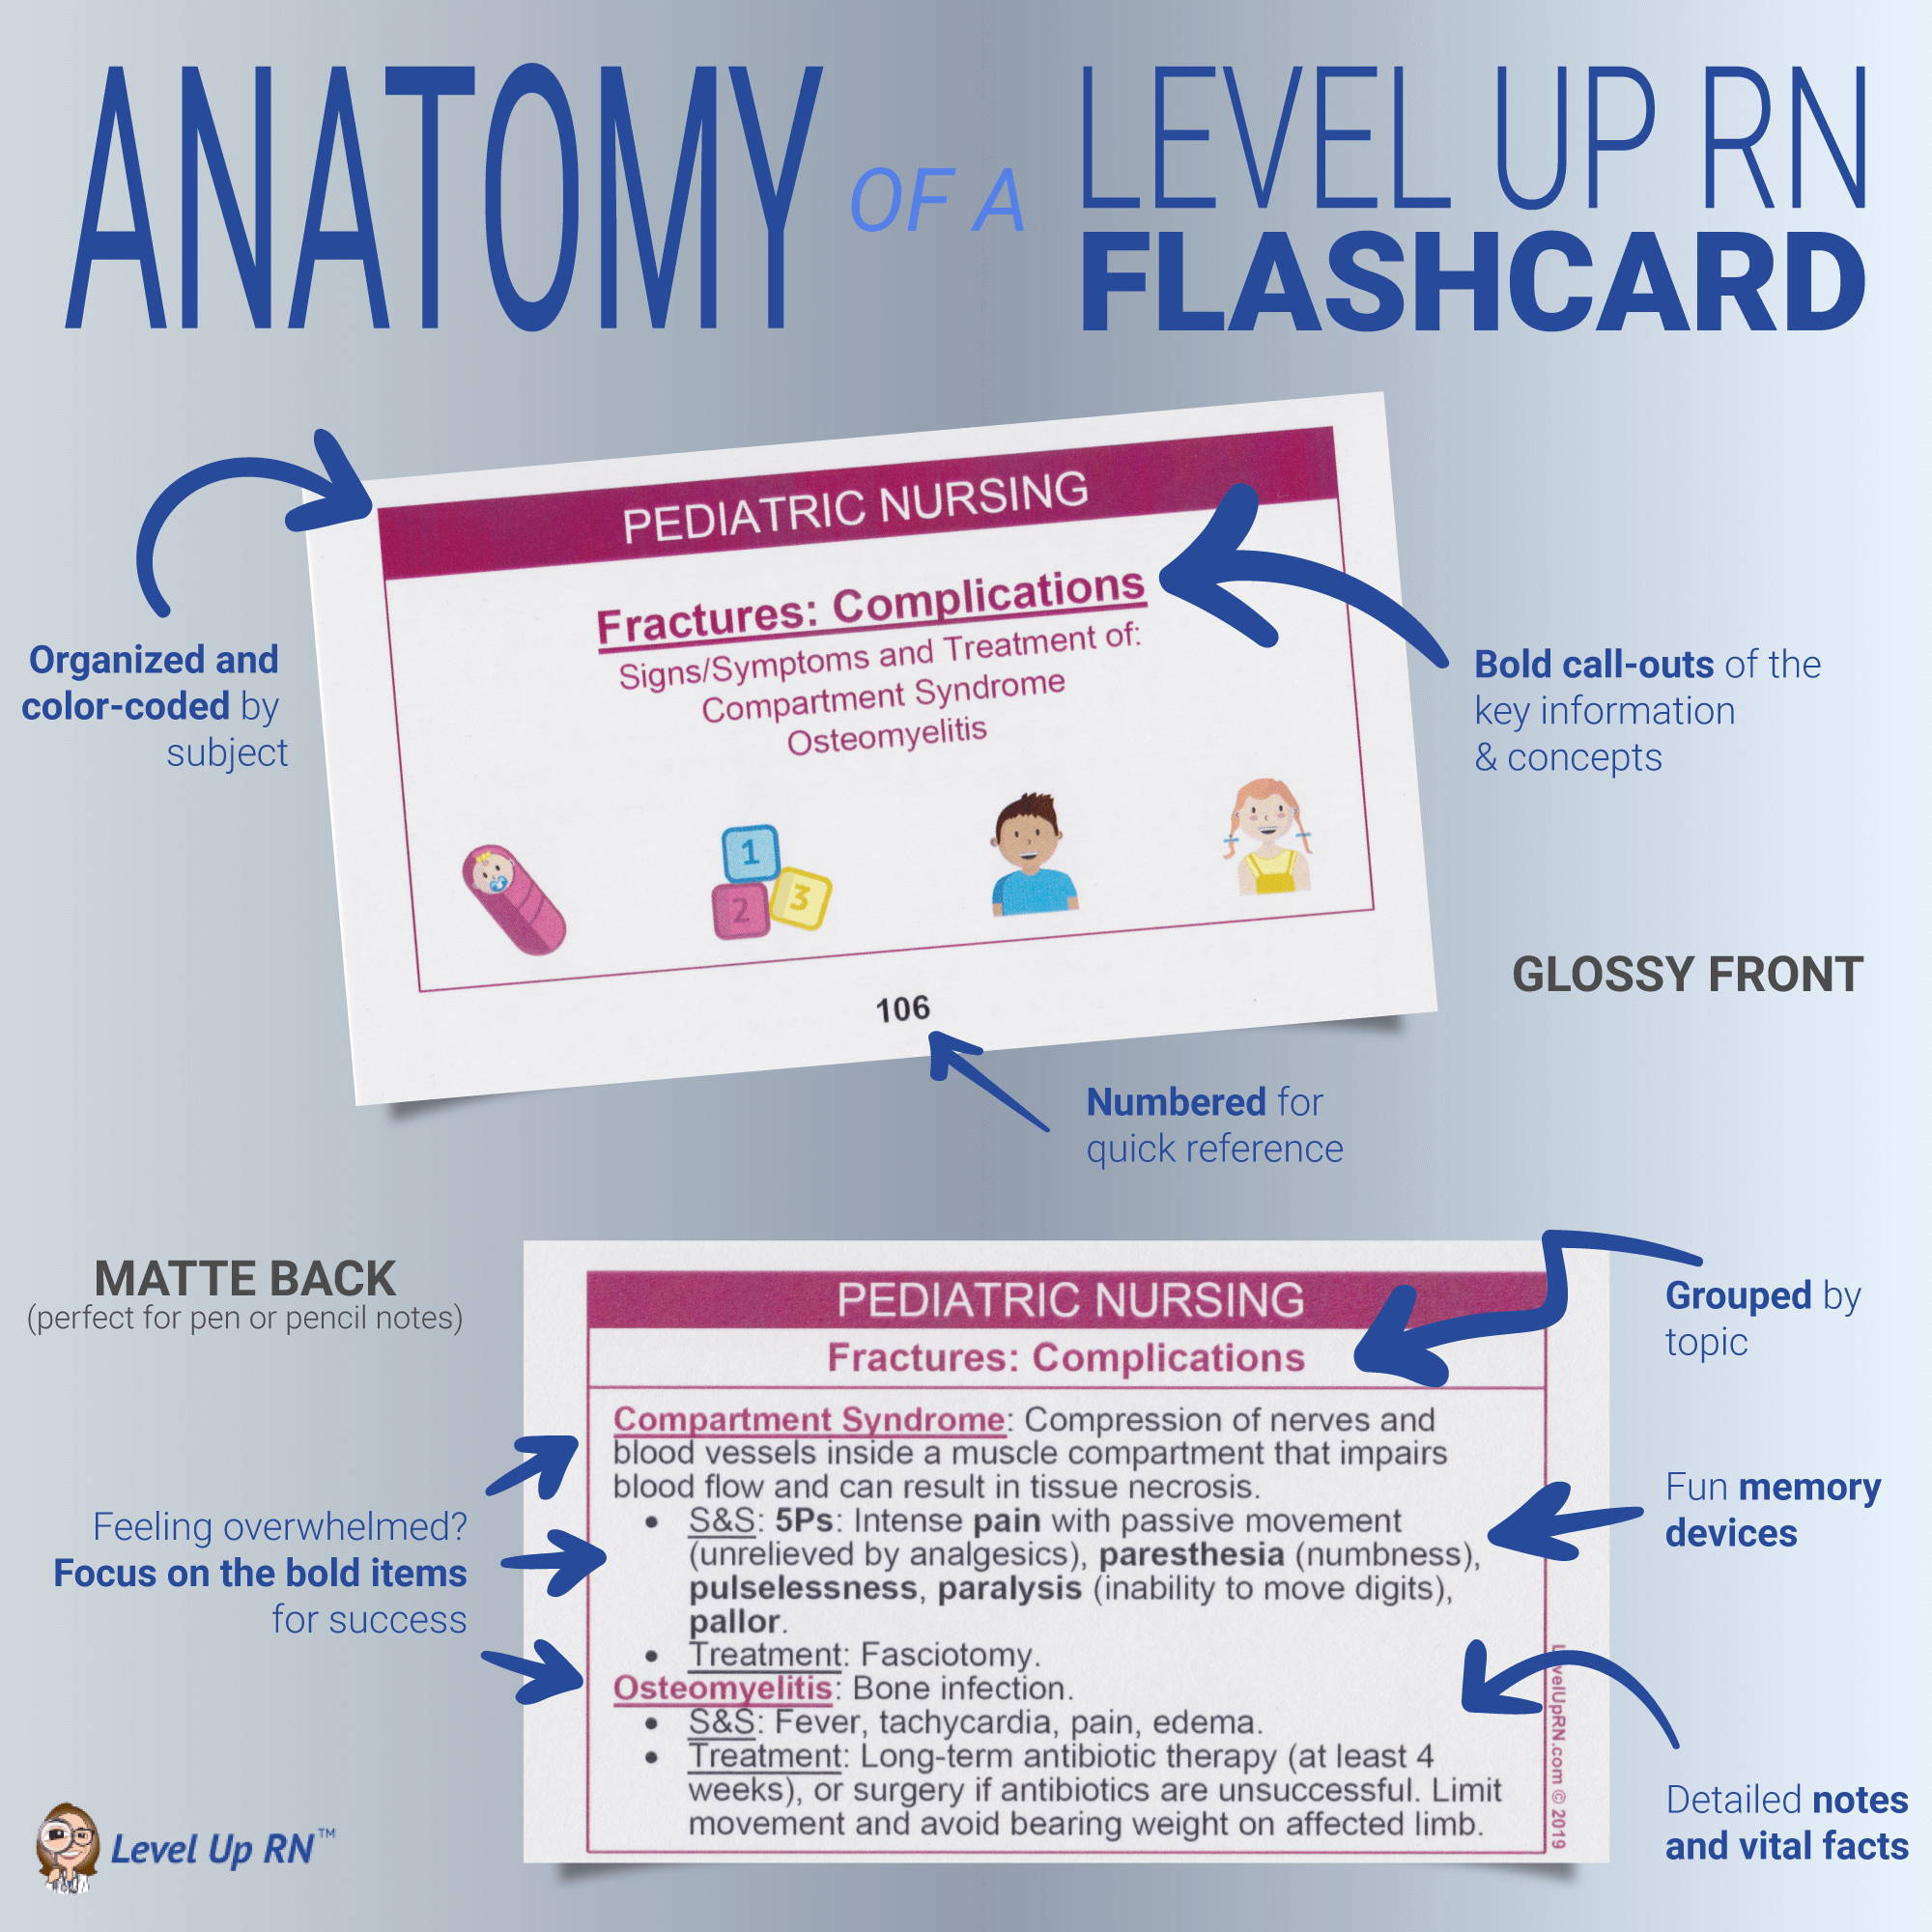 LevelUpRN Nursing Flashcard Features